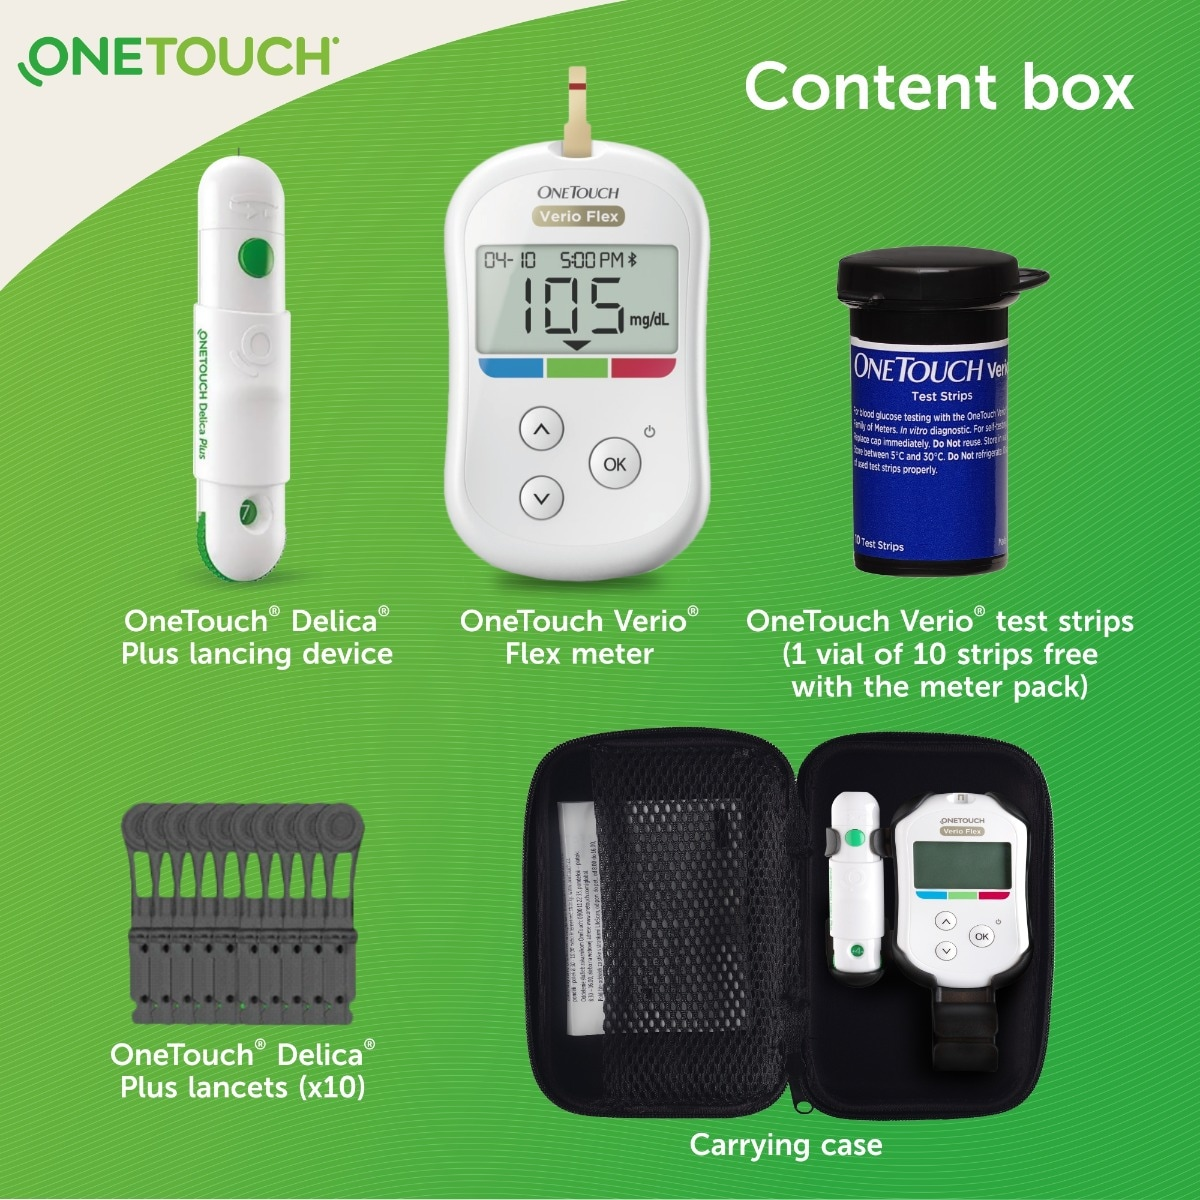 OneTouch Verio Flex Blood Glucose Monitor with OneTouch Reveal mobile application(FREE 10 strips + lancing device + 10 lancets), 1 Kit, Pack of 1